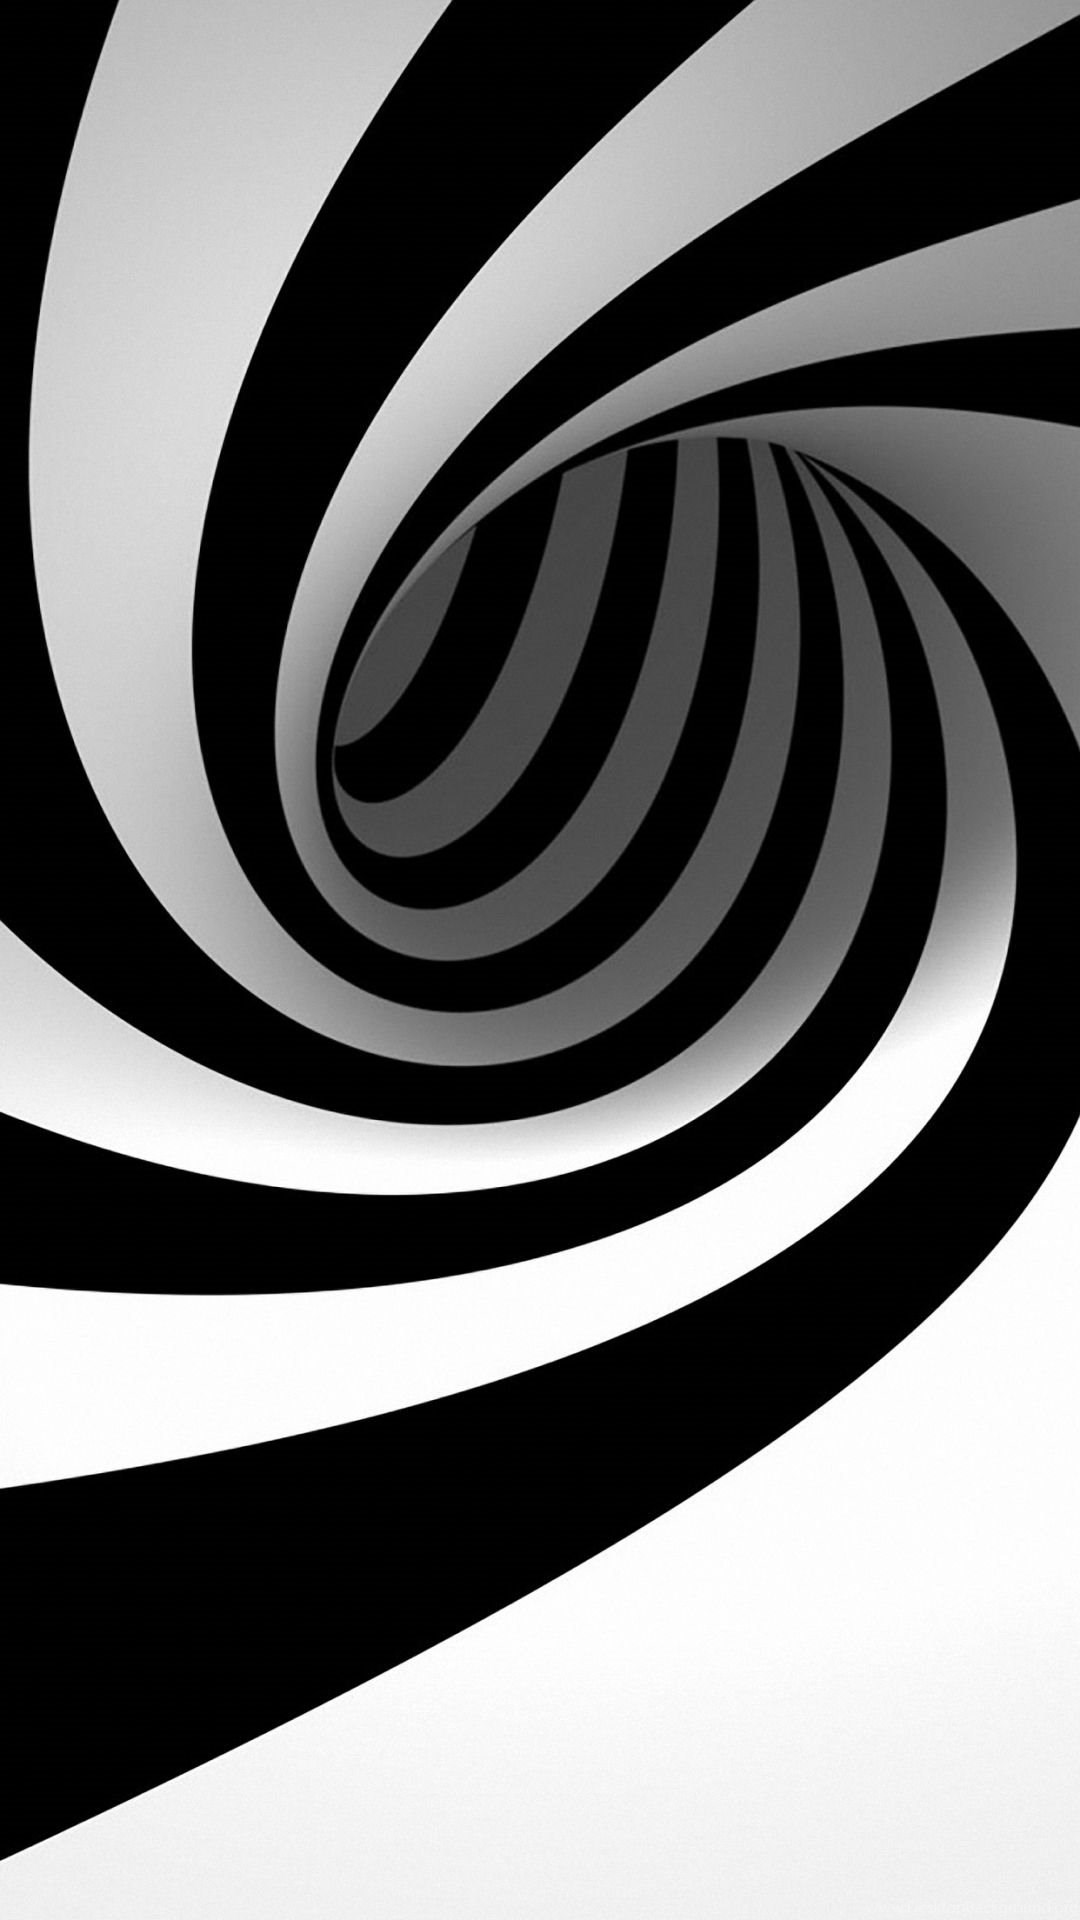 3d Illusion Wallpapers Hd 3d Black And White Iphone 6s Wallpapers Hd Desktop Background